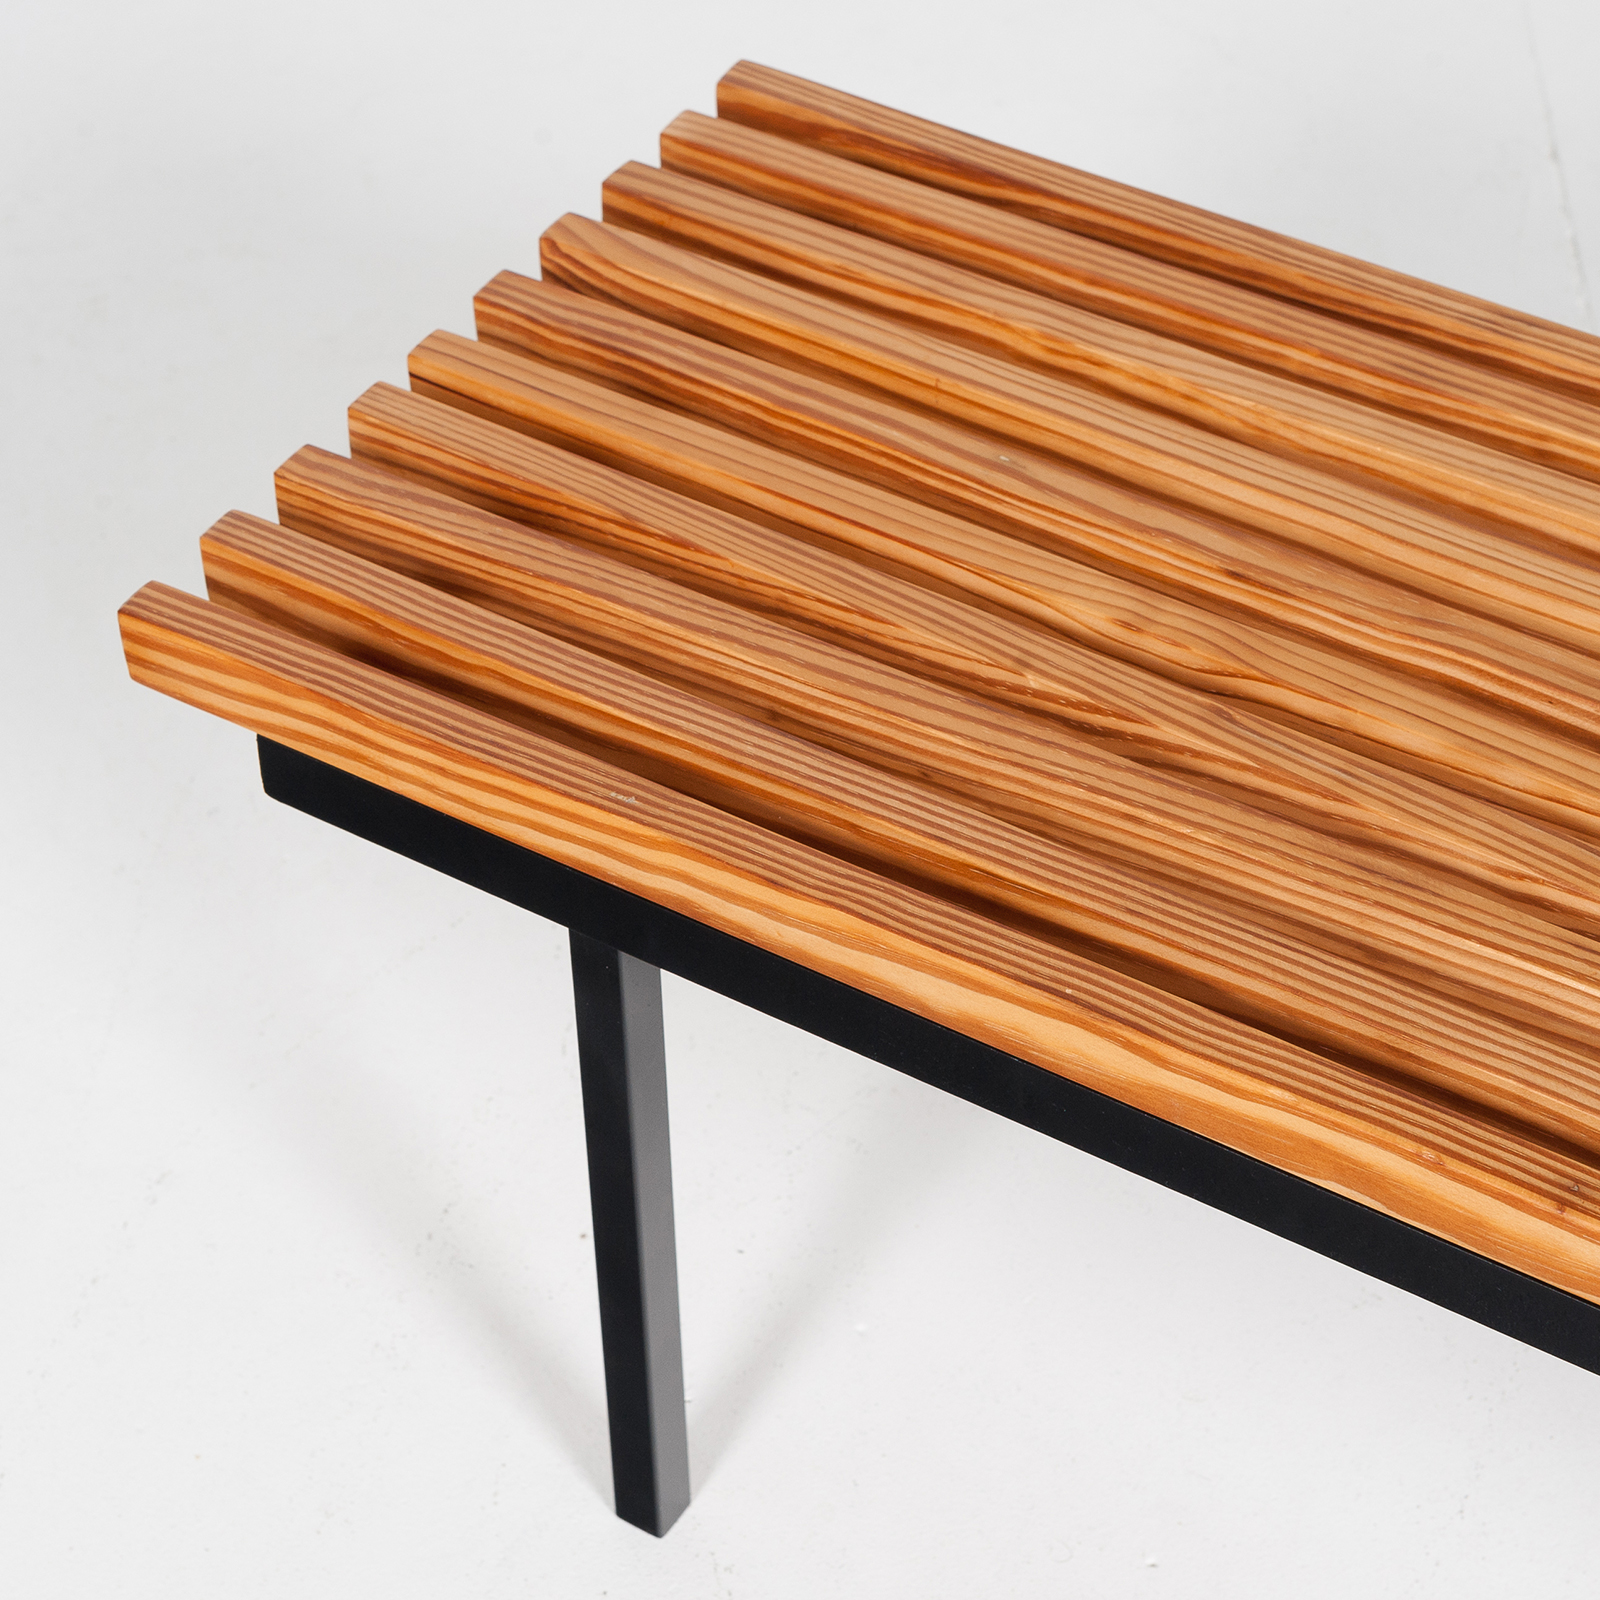 Bench In Pine And Steel, 1950s, The Netherlands 12